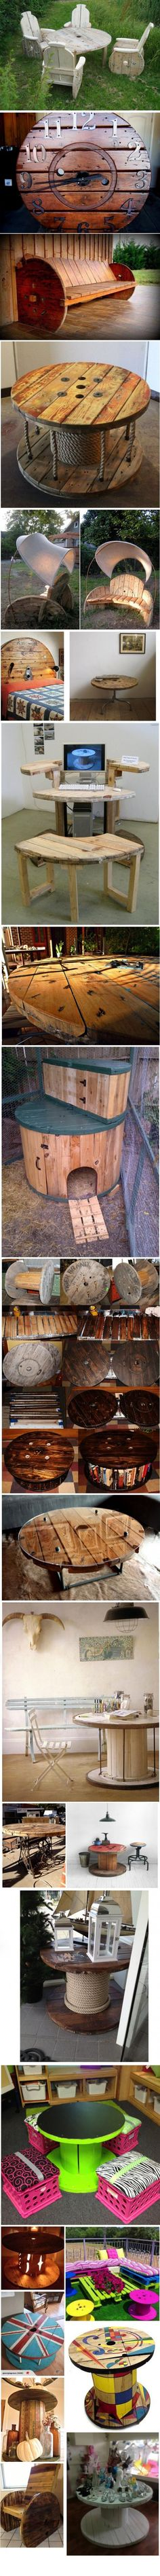 Ideas for repurposing a wire cable spool.